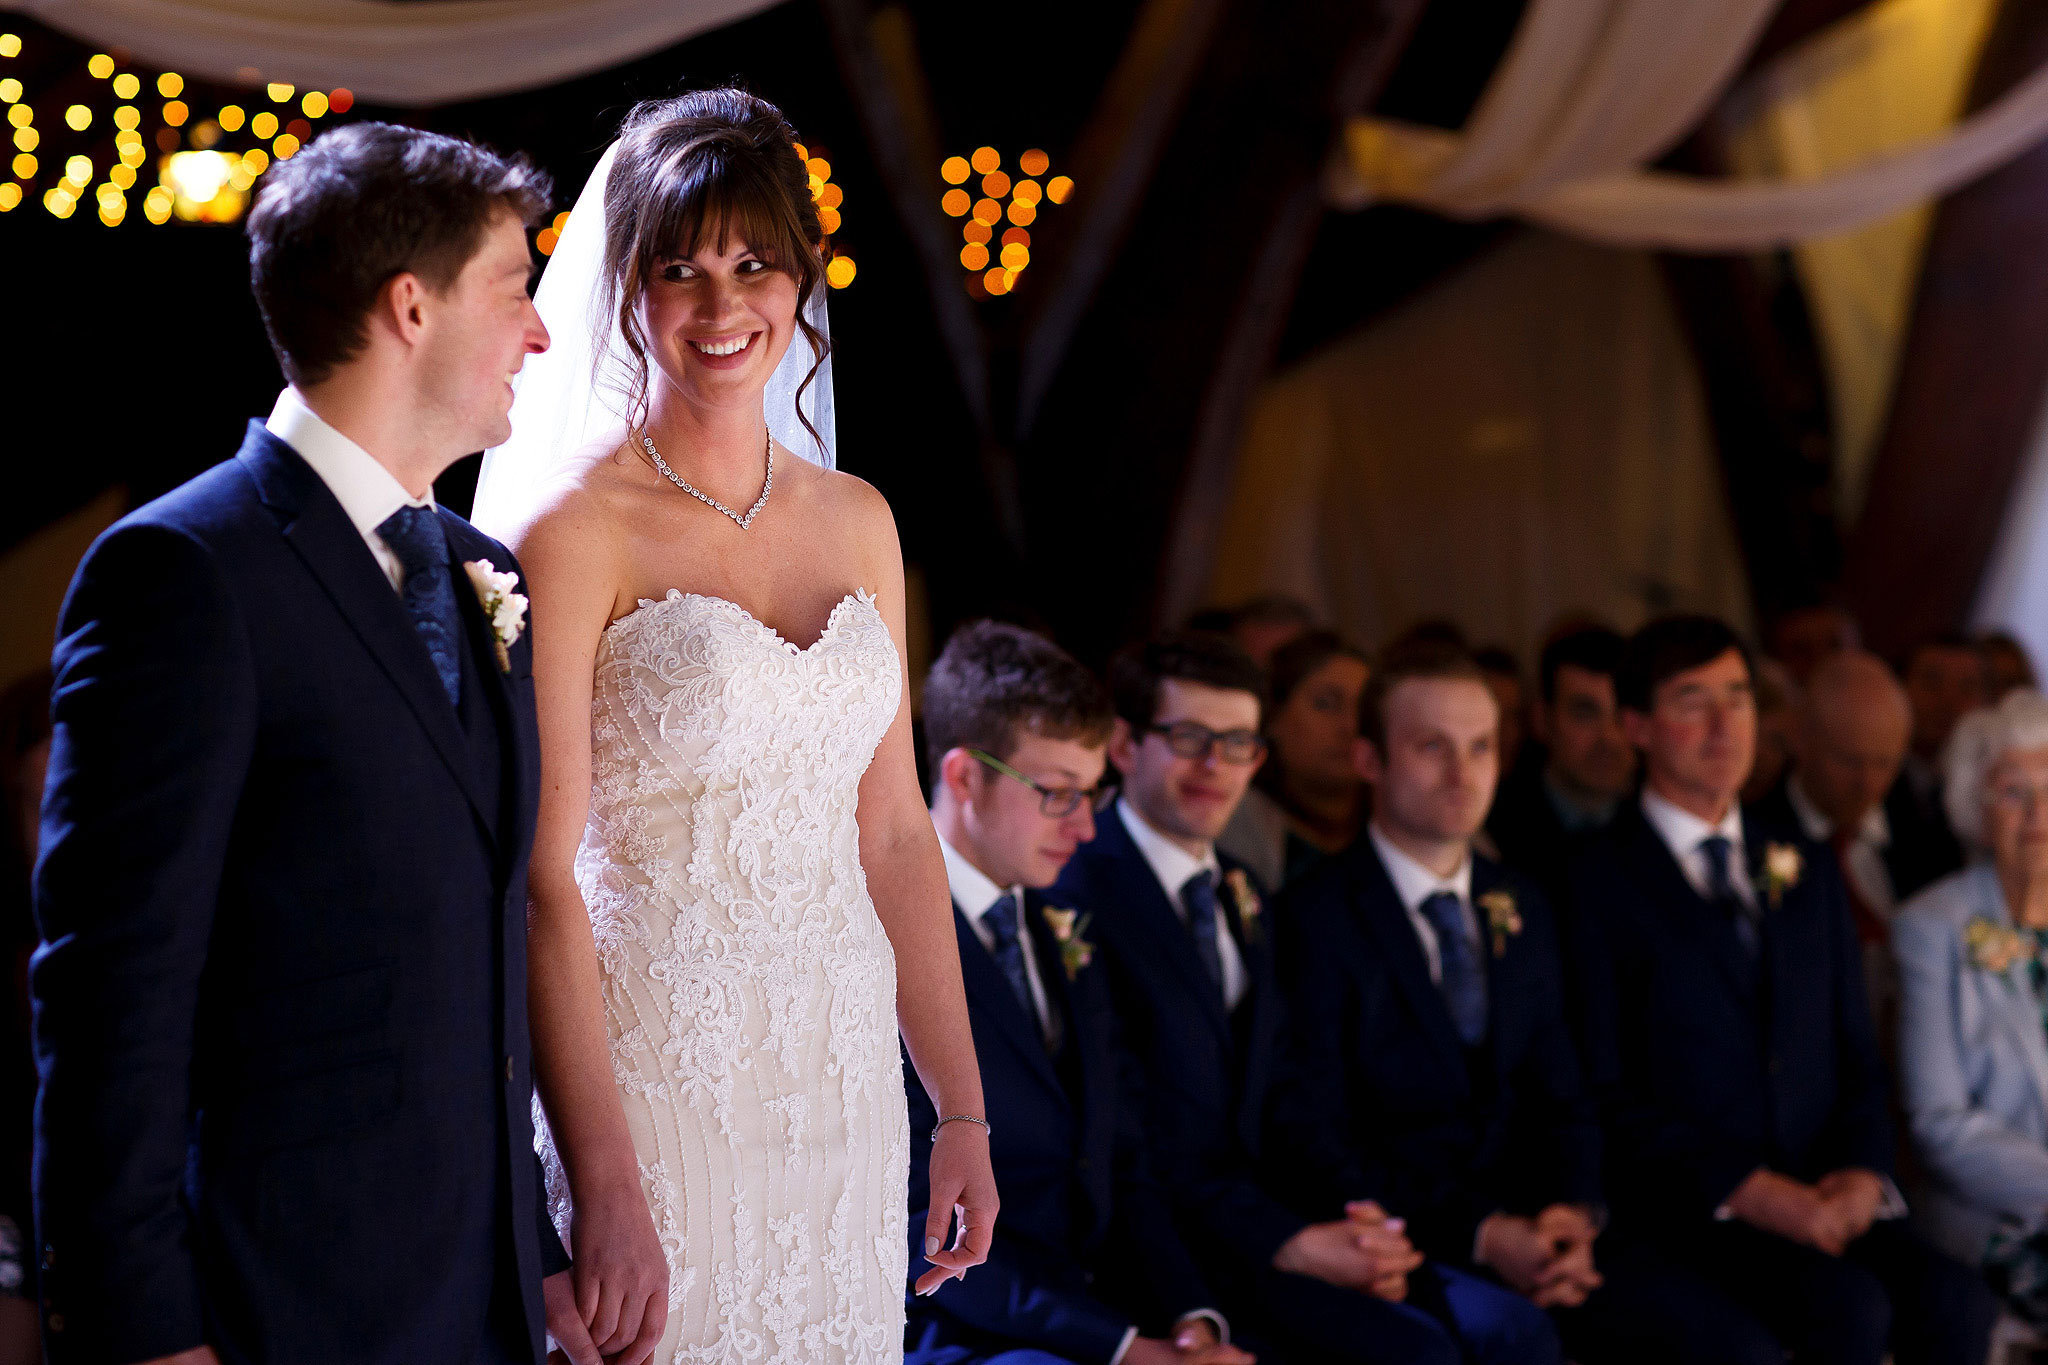 Bride wearing strapless lace wedding dress smiling towards her groom at the top of the aisle during Rivington Hall Barn civil ceremony